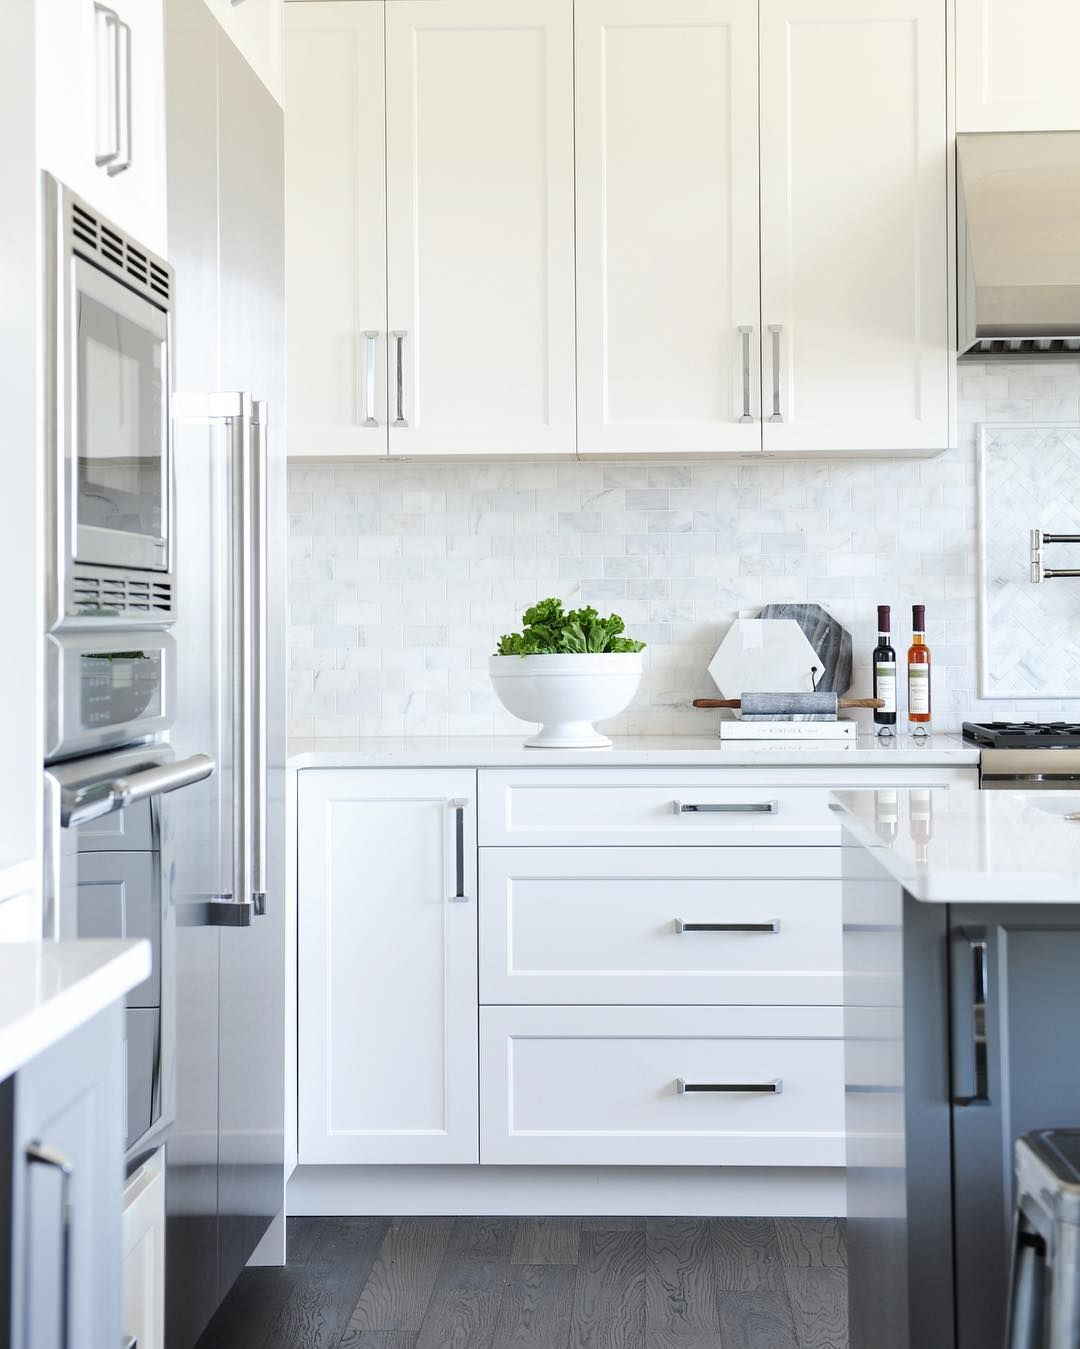 "Amanda Evans on Instagram: ""I love this kitchen! White shaker panel ..."